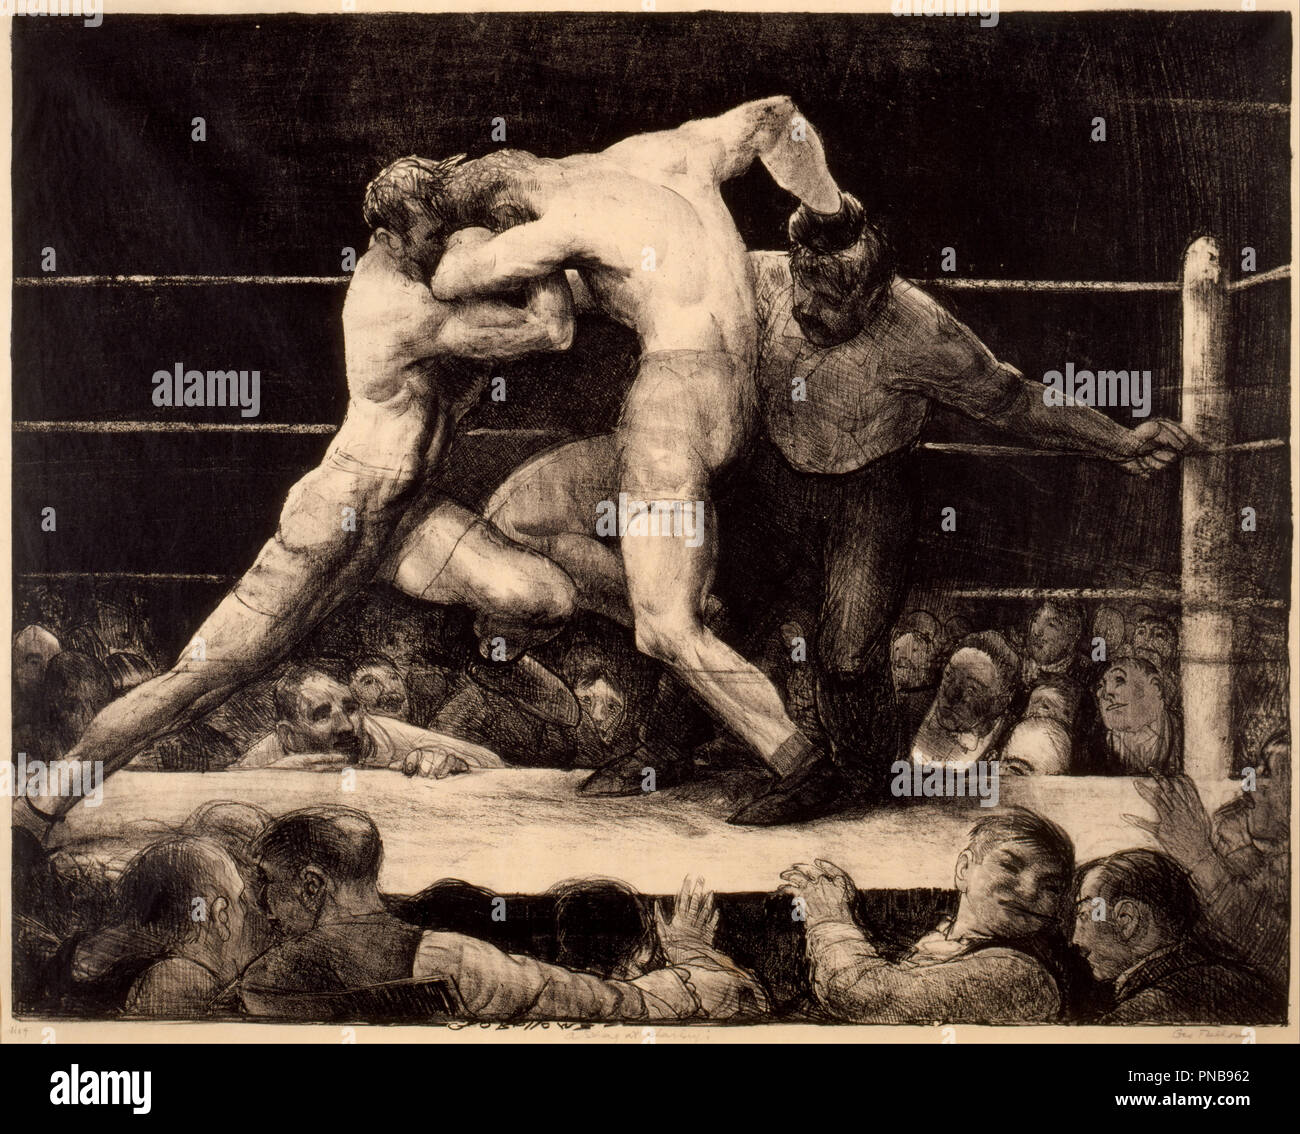 A Stag at Sharkey's. Date/Period: 1917. Lithograph. Height: 18.6 in (47.2 cm); Width: 23.9 in (60.7 cm). Author: George Bellows. Bellows, George. - Stock Image